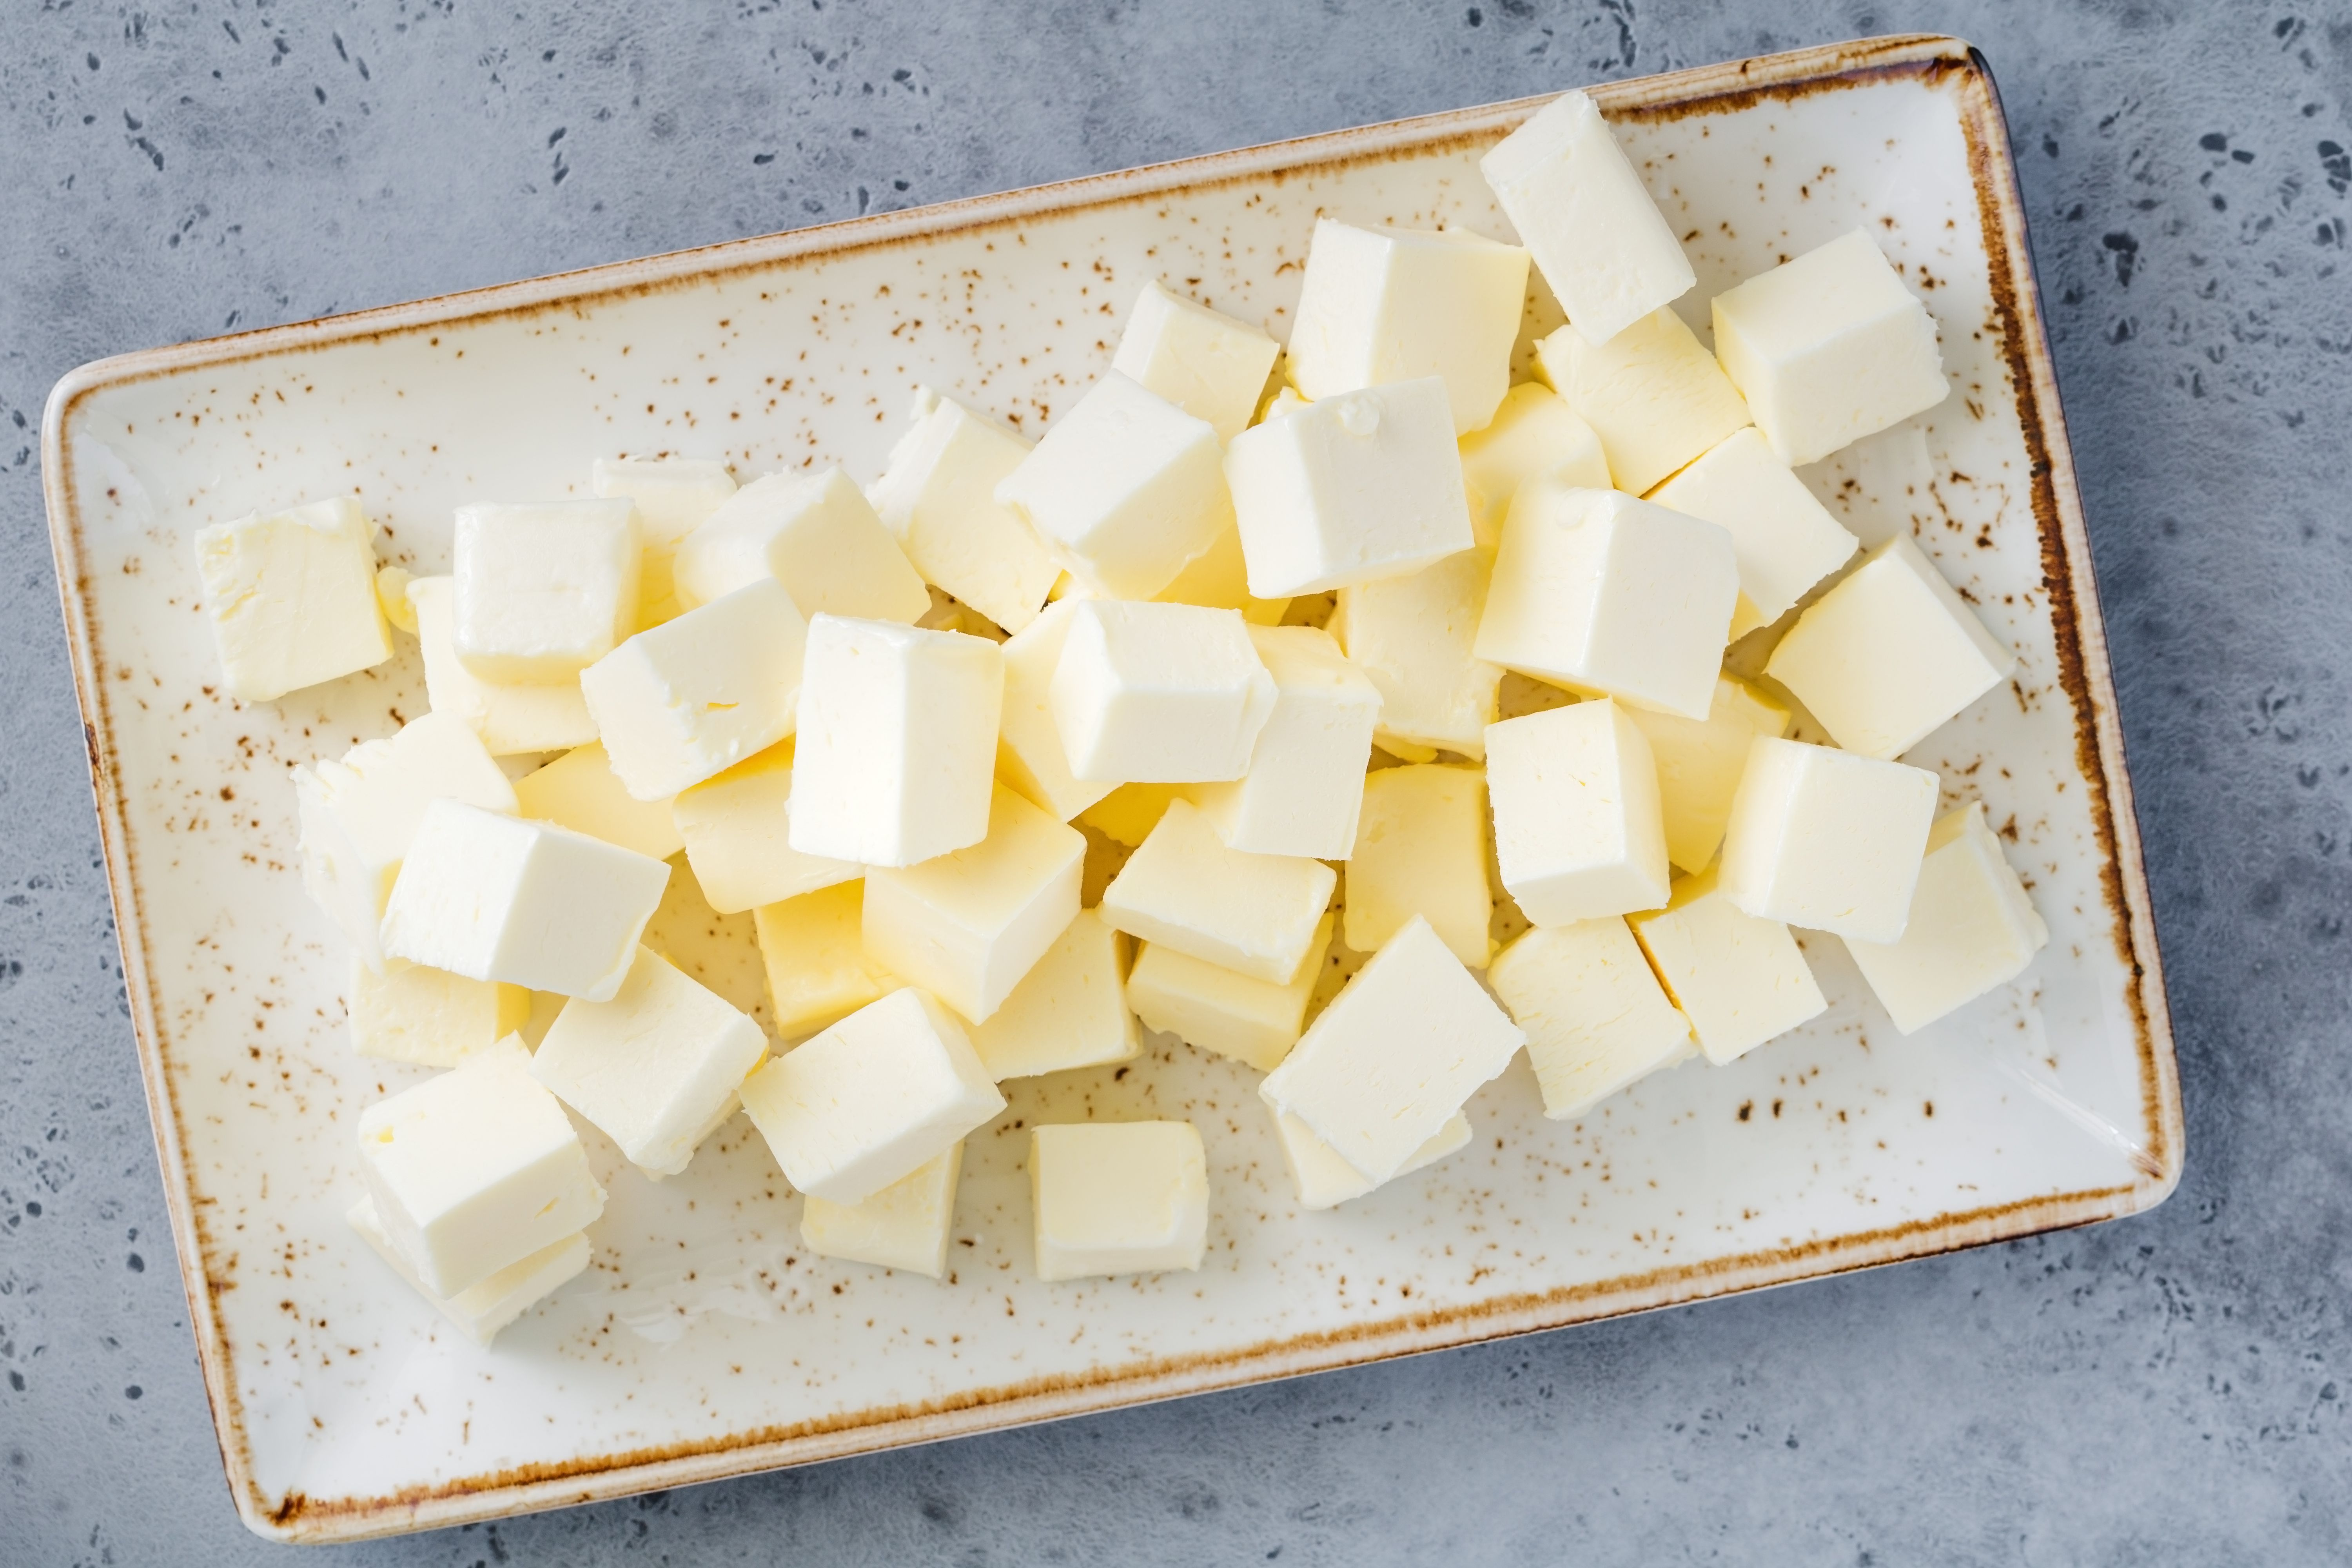 Cubed butter on a platter for beurre blanc sauce